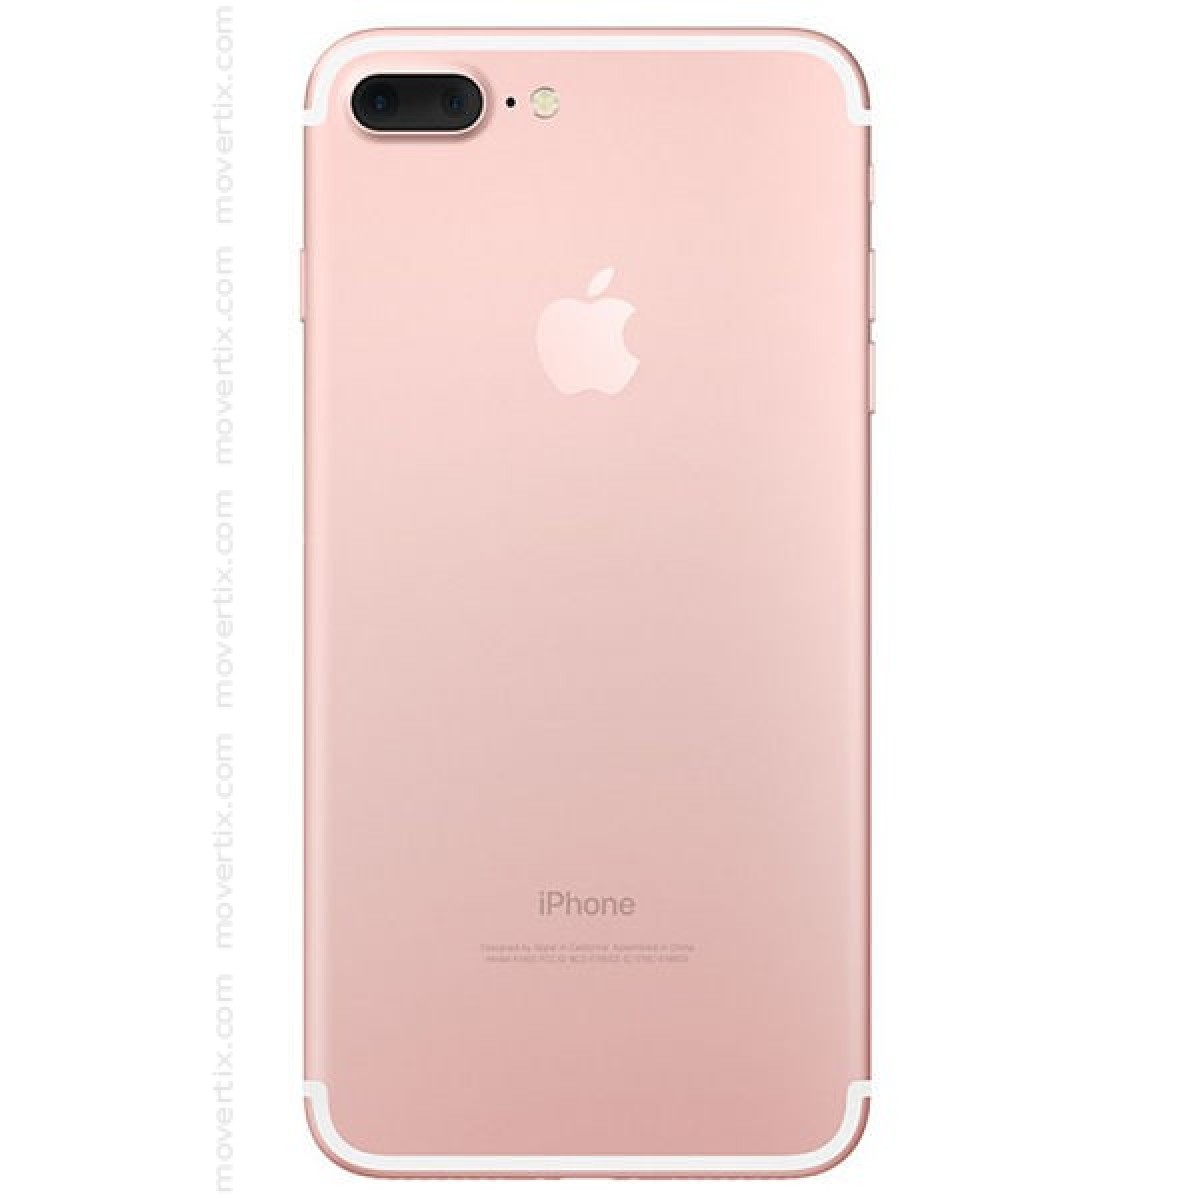 442ea40cdc3 Apple iPhone 7 Plus en Oro Rosa de 256GB (0190198046604) | Movertix Tienda  de móviles libres